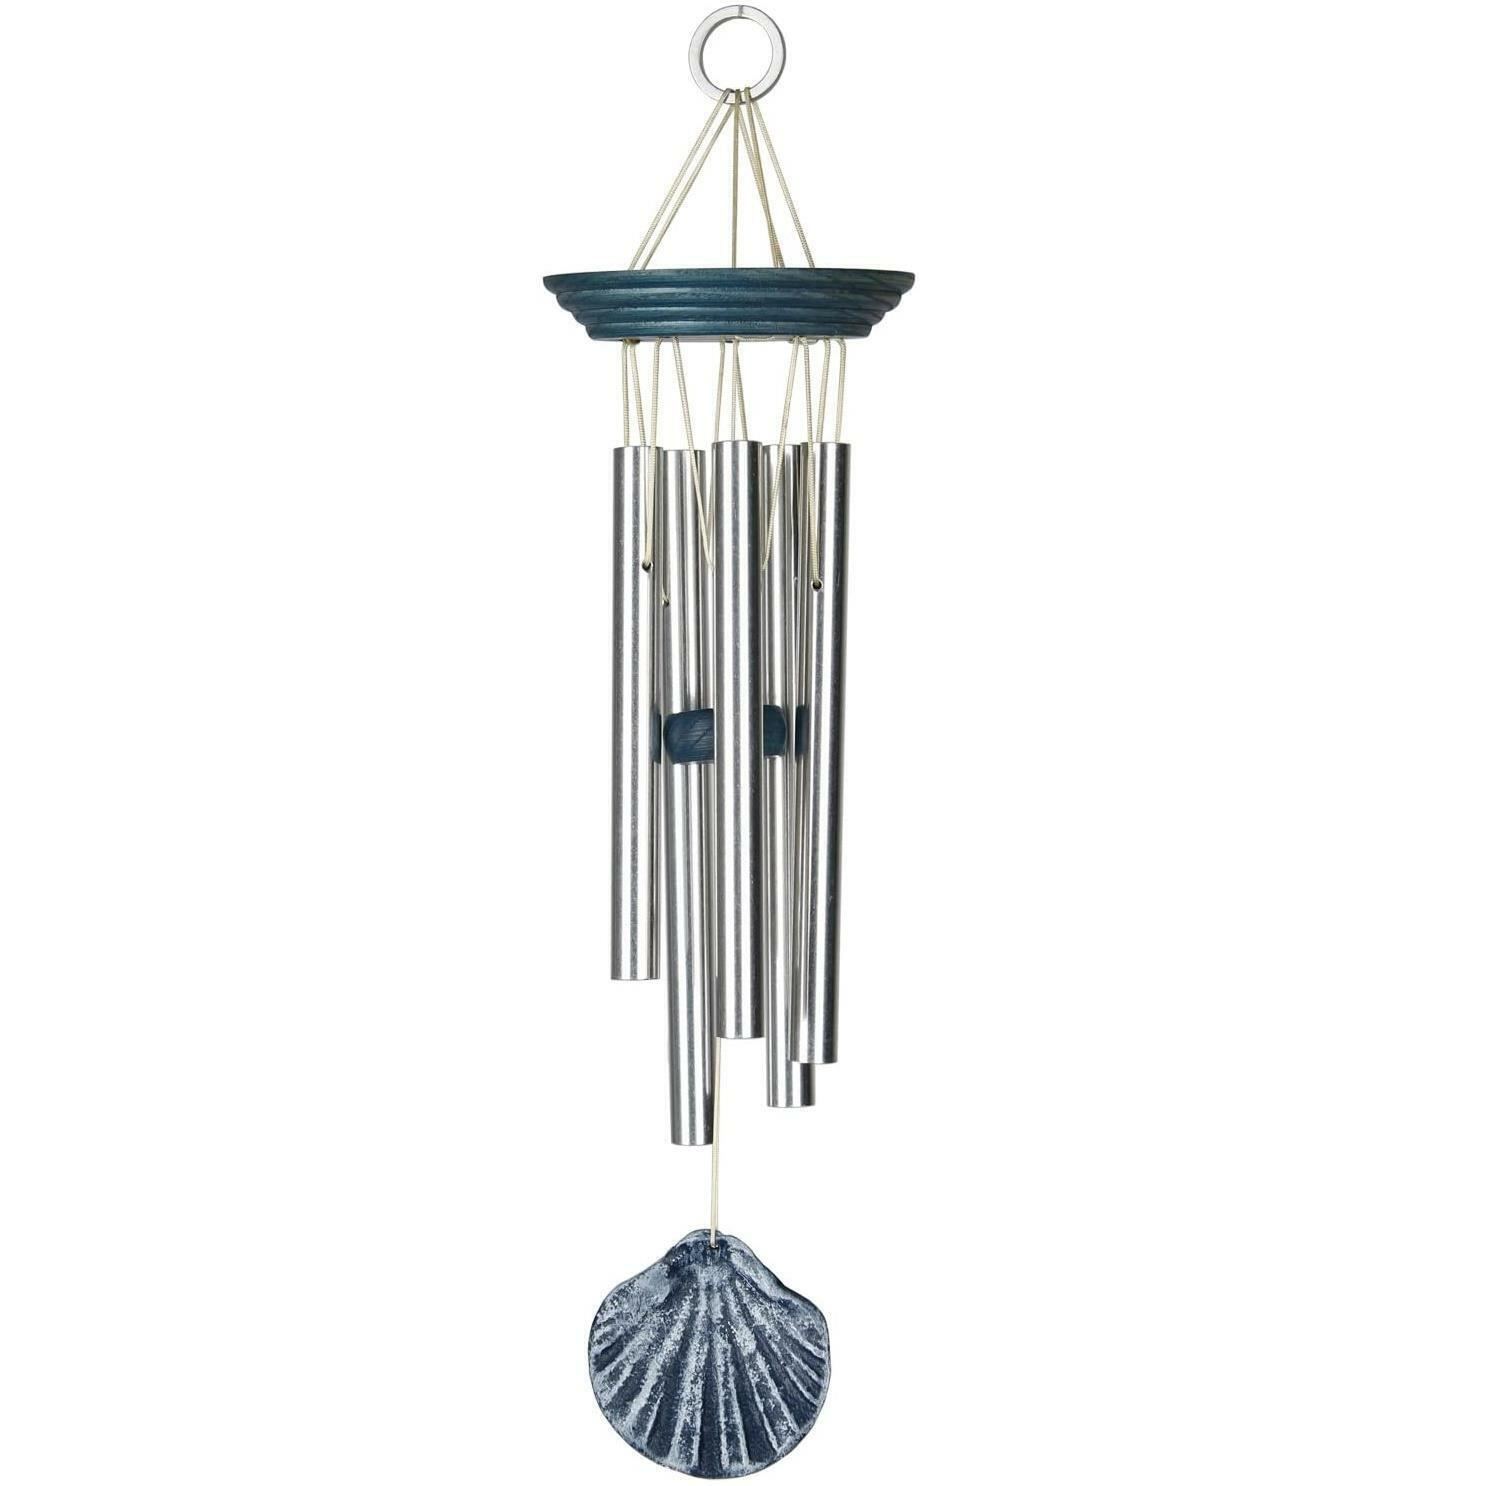 Woodstock Chimes Summer Seashore Blue Scallop Hanging Garden Musical Wind Chime